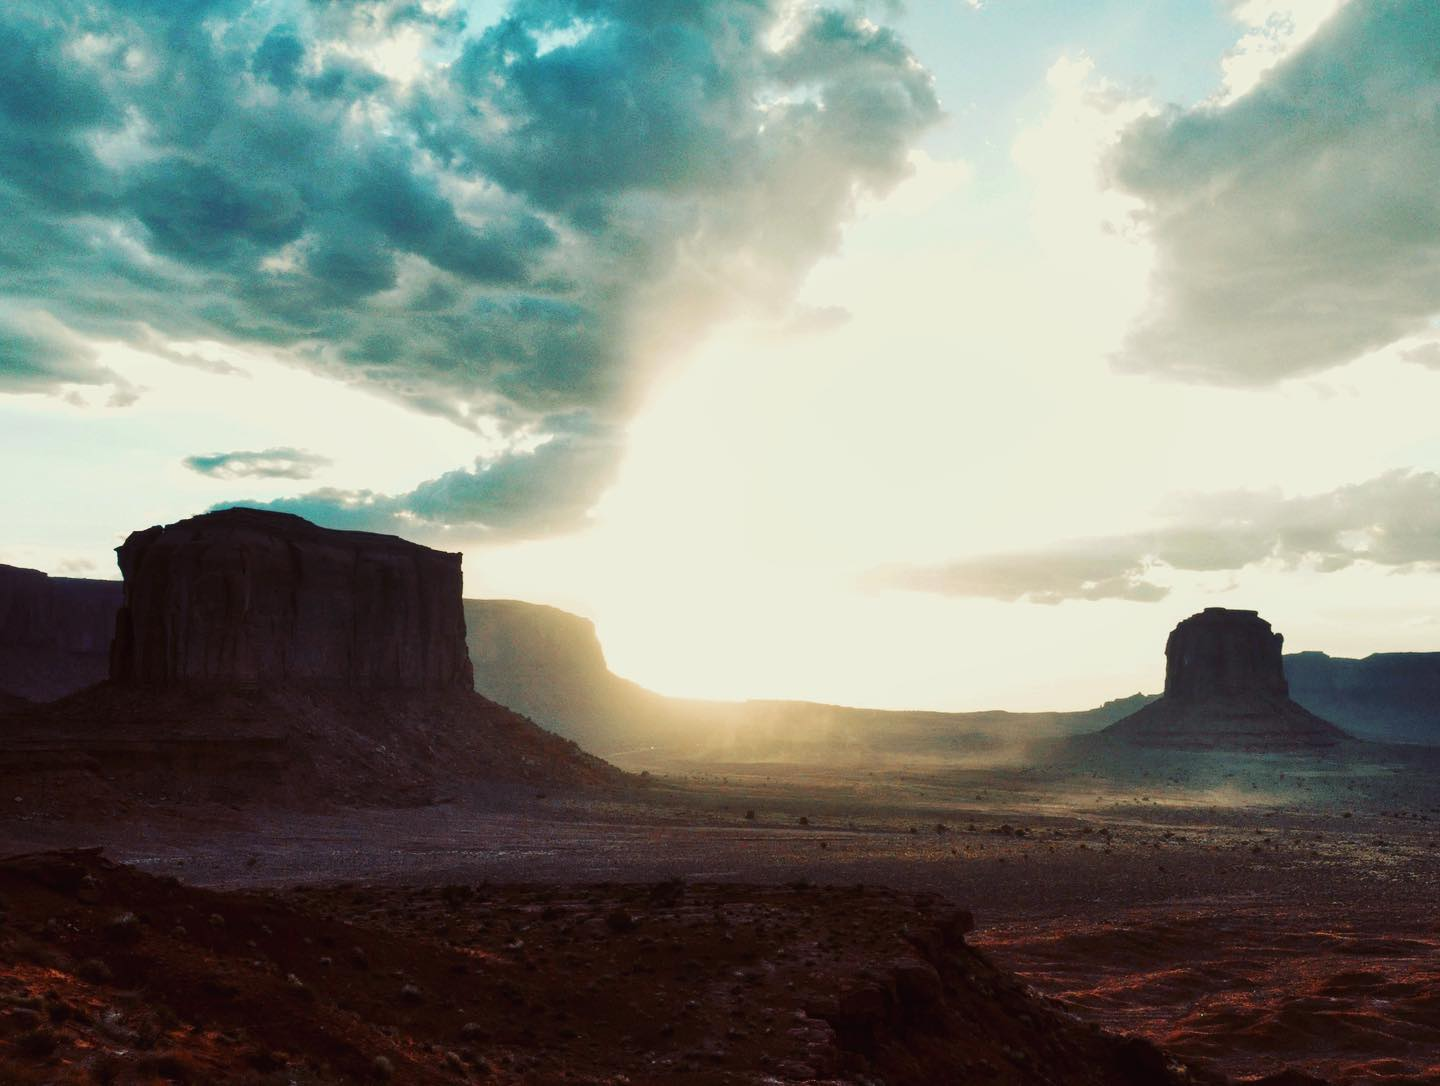 Monument Valley, Arizona/Utah Amazing nature! If you haven't been to Monument Valley, you have to put it on your bucket list.   #usa #us #usatravel #usatravels #usatrip #usareisen #usaroadtrip #monumentvalley #usaliebe #usalove #usaaddicted #usaphotography #travelphotography #travelpics #traveltheworld #traveltheusa #naturephotography #naturelovers #naturfotografie #natureperfection #natureaddict #beautifulnature #beautifulplaces #picoftheday #naturegram #travelblogger #reiseblogger #instadaily #natureshots #naturebeauty